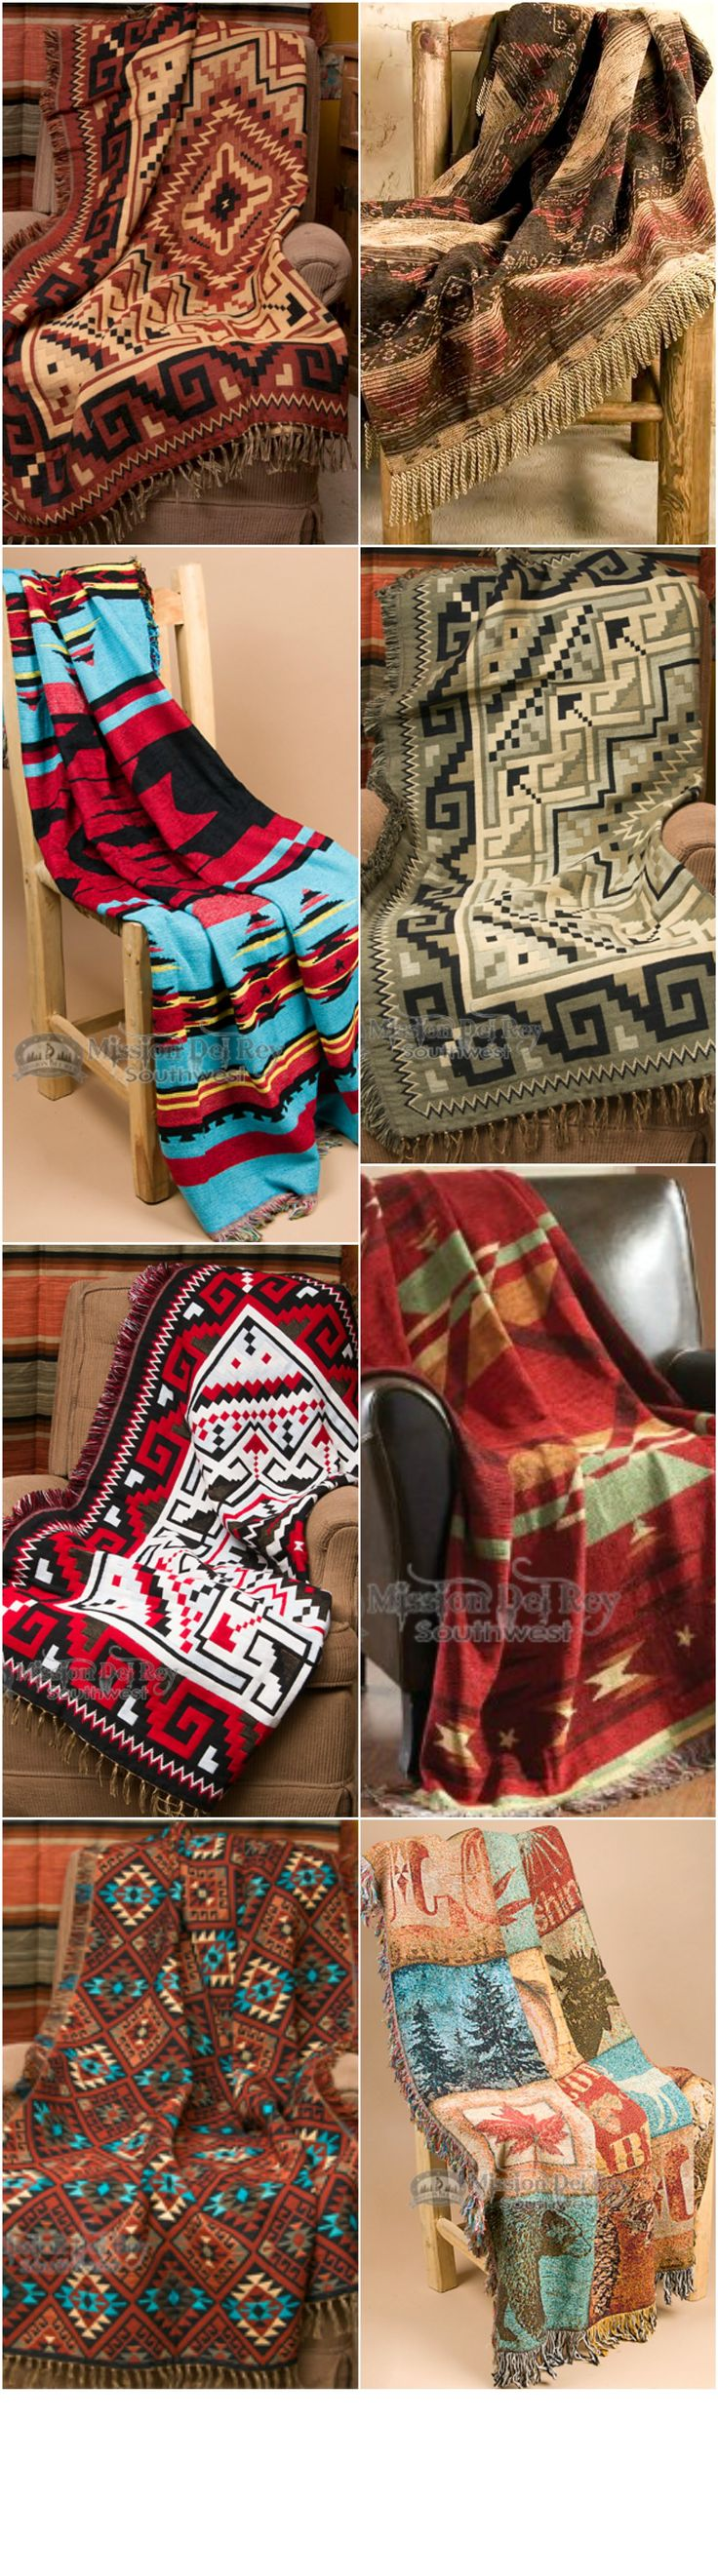 top 25 best southwestern throws ideas on pinterest easy meals shop southwestern throws southwest throw blankets and designer throws for perfect rustic lodge decor